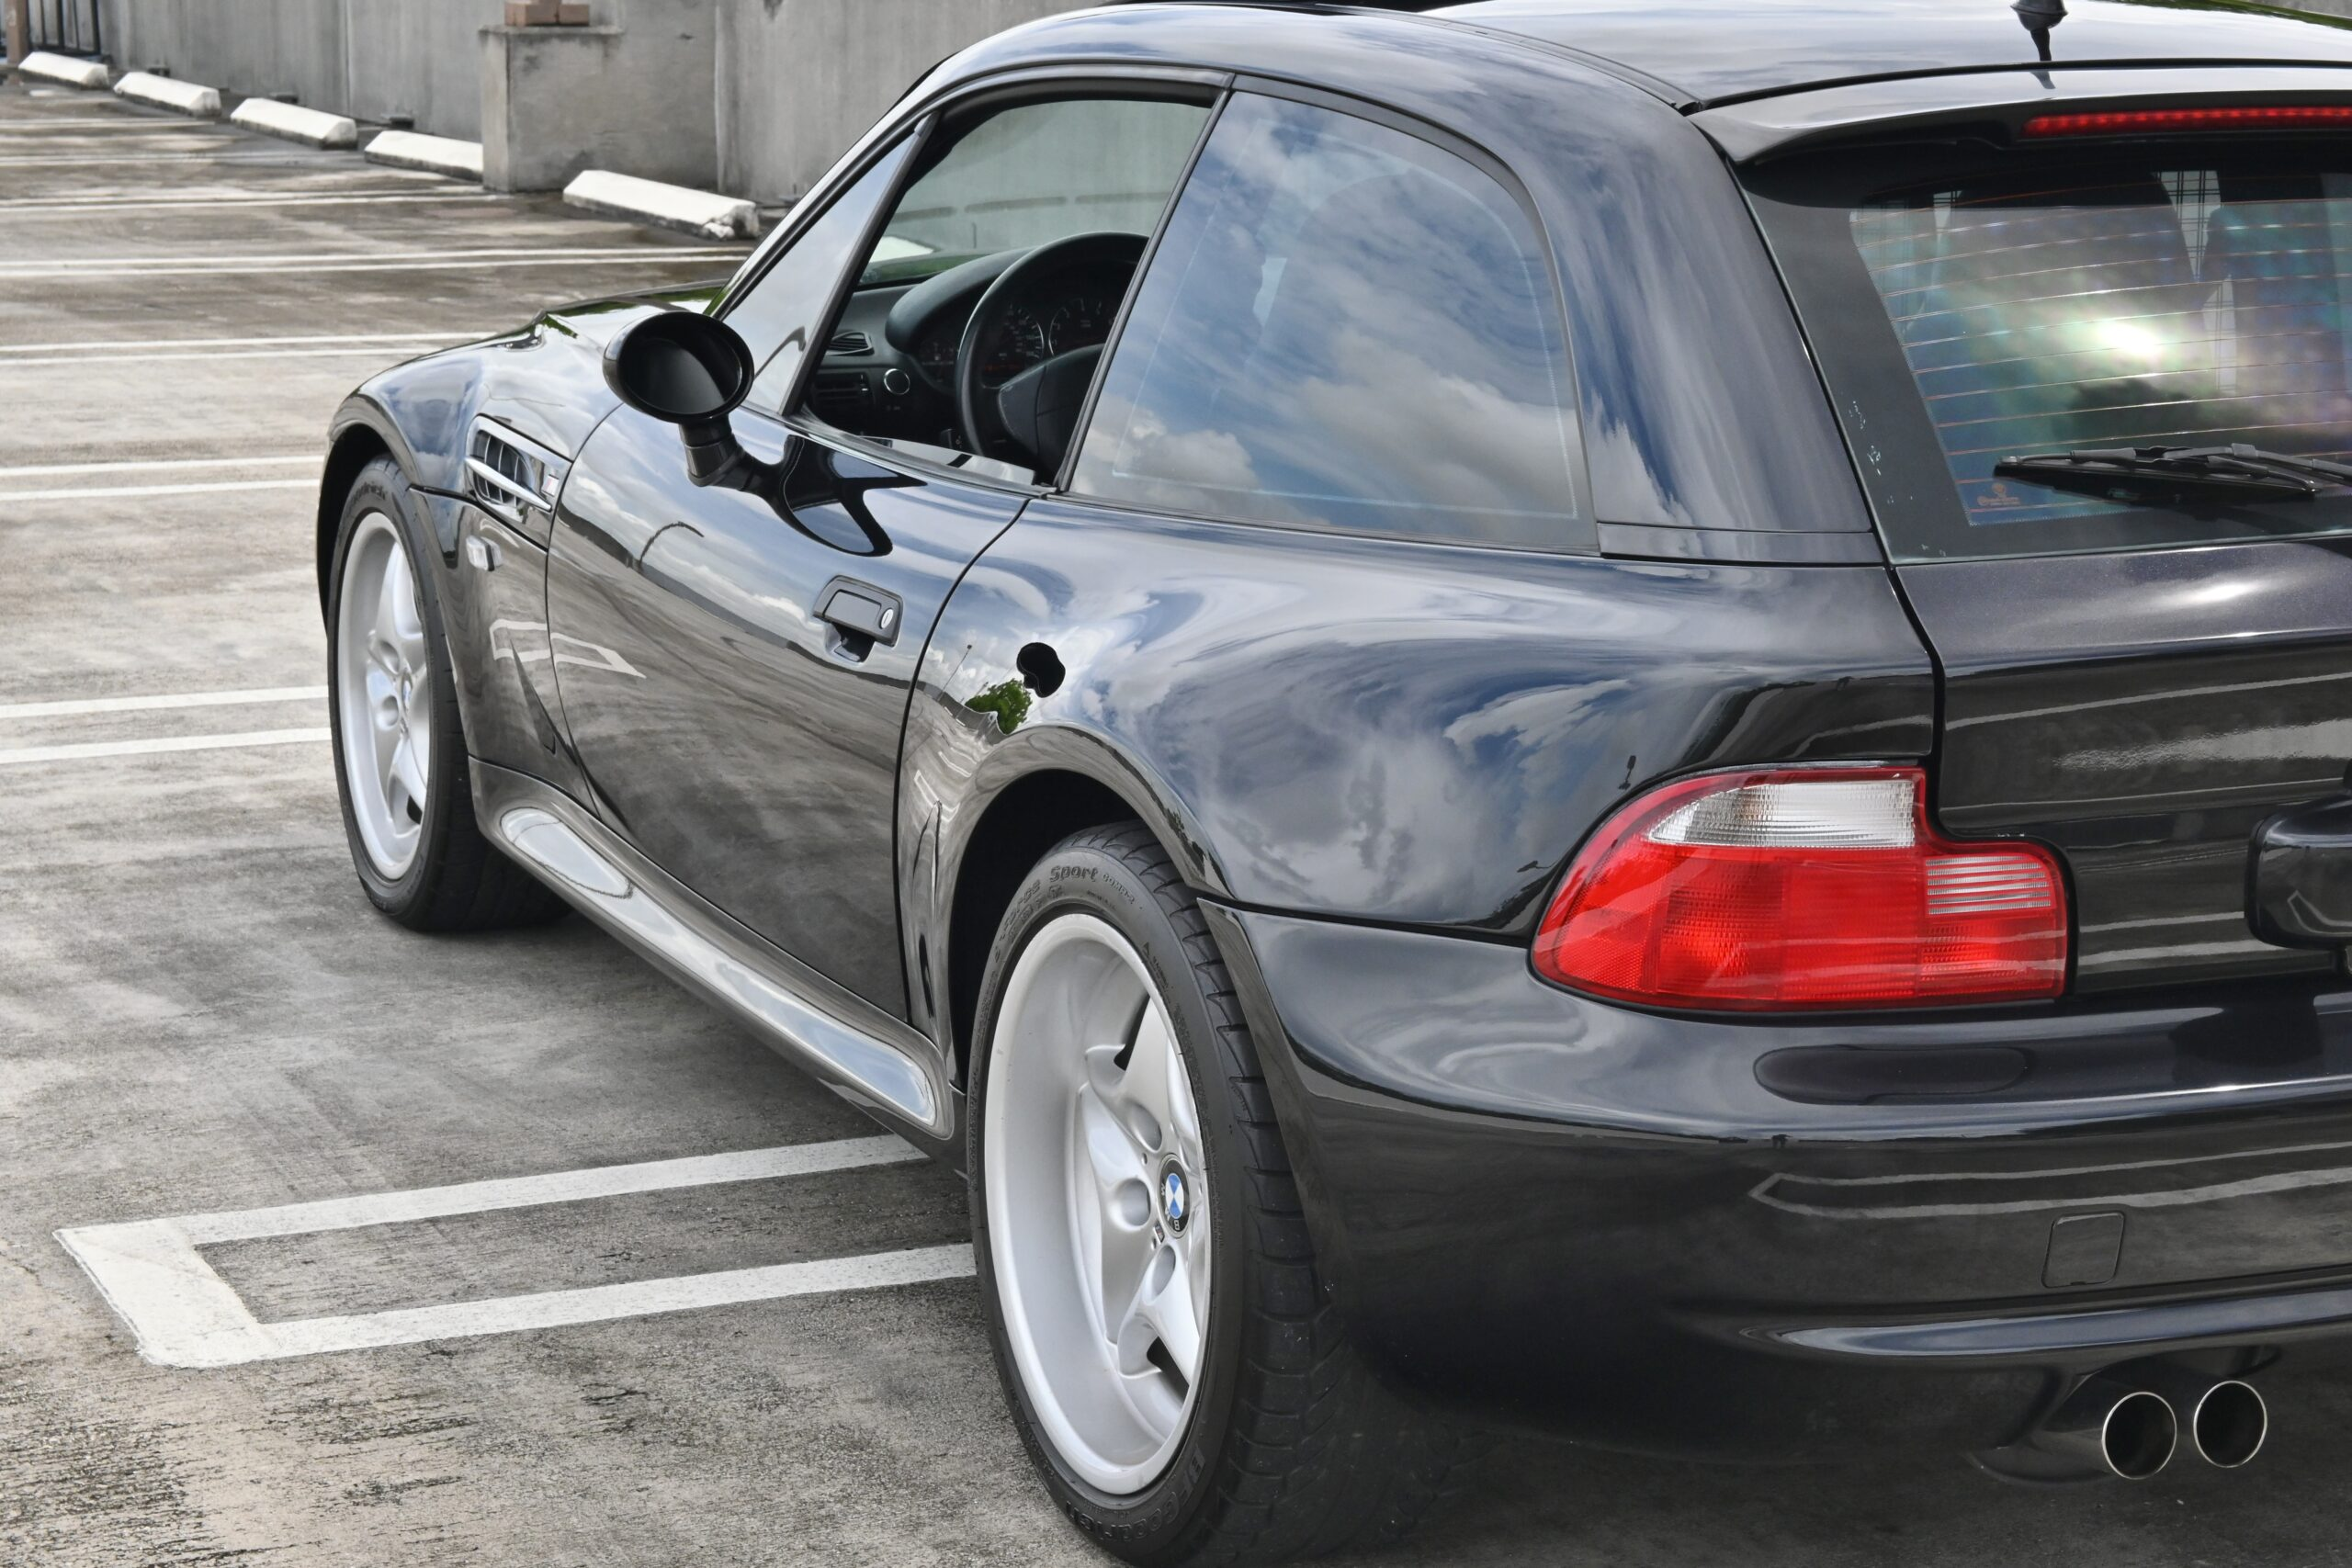 2000 BMW Z3 M Coupe 1 of 41 in this Color Combination – Unmodified – Well Maintained – Florida Car